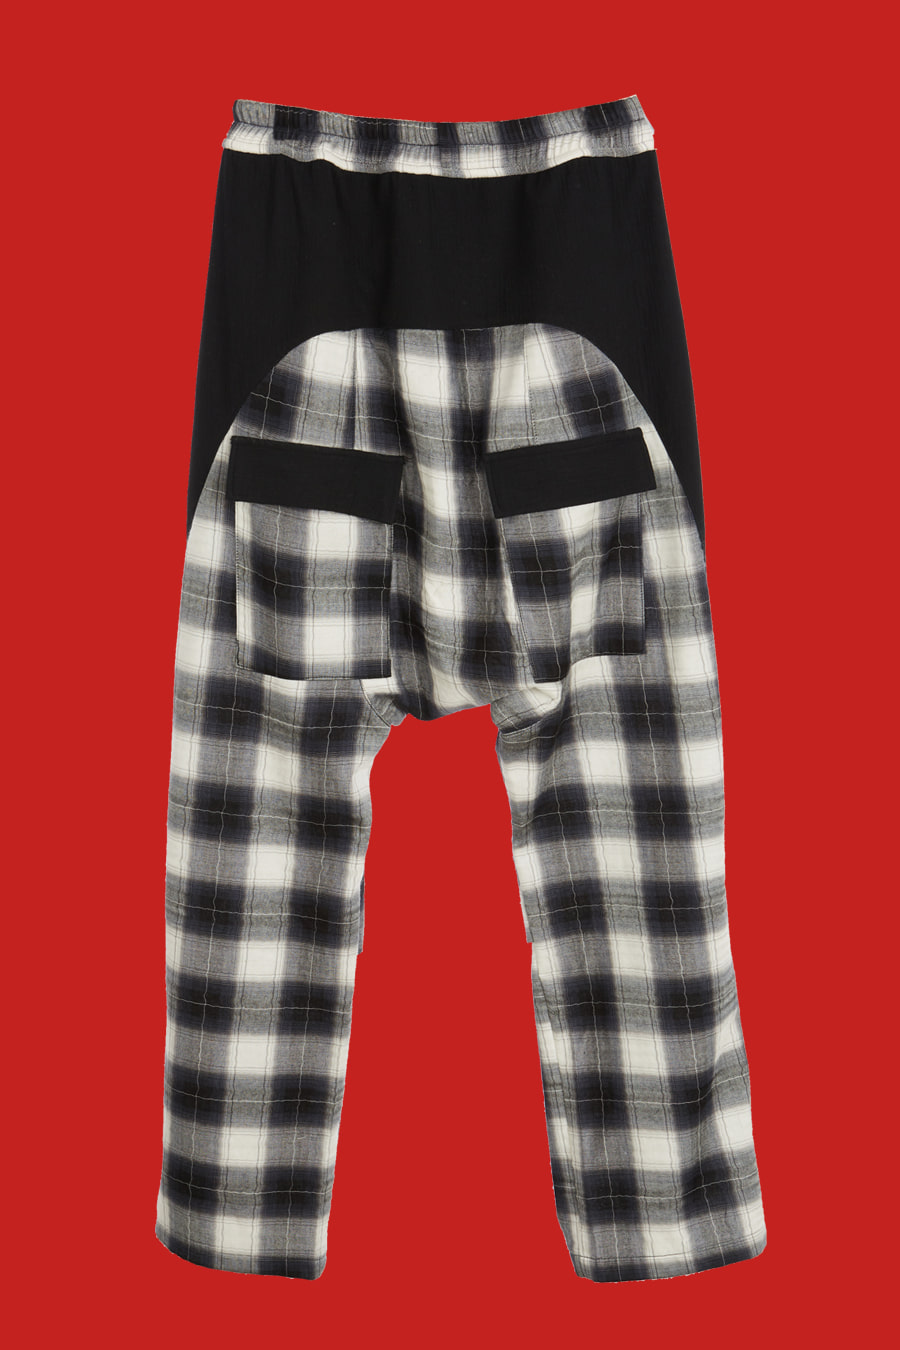 Plaid Check Drop Crotch Pants - Black